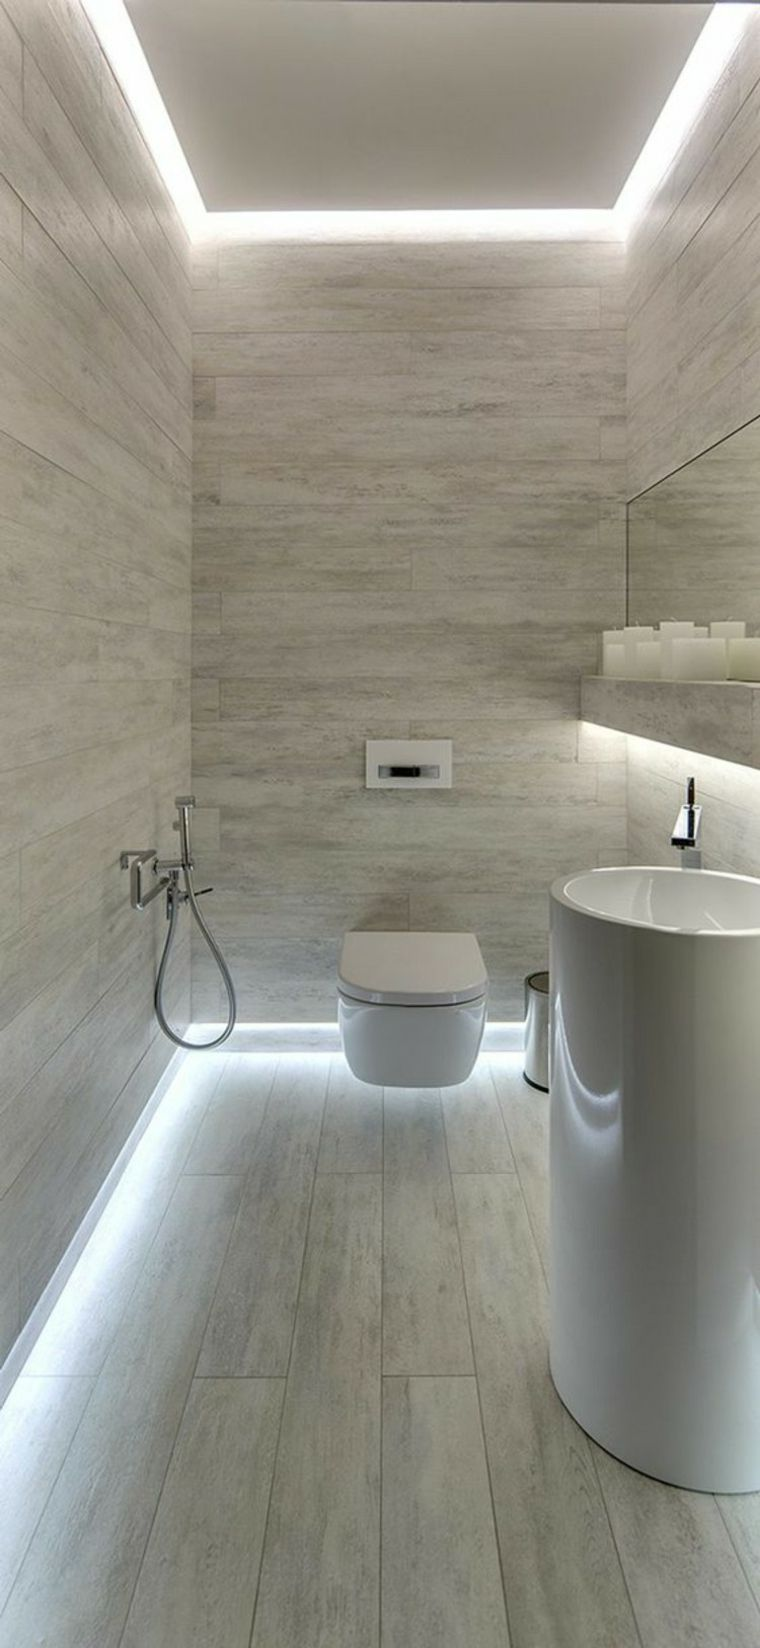 Eclairage Led Indirect Pour Interieurs 42 Idees In 2020 Modern Bathroom Design Bathroom Interior Design Bathroom Interior